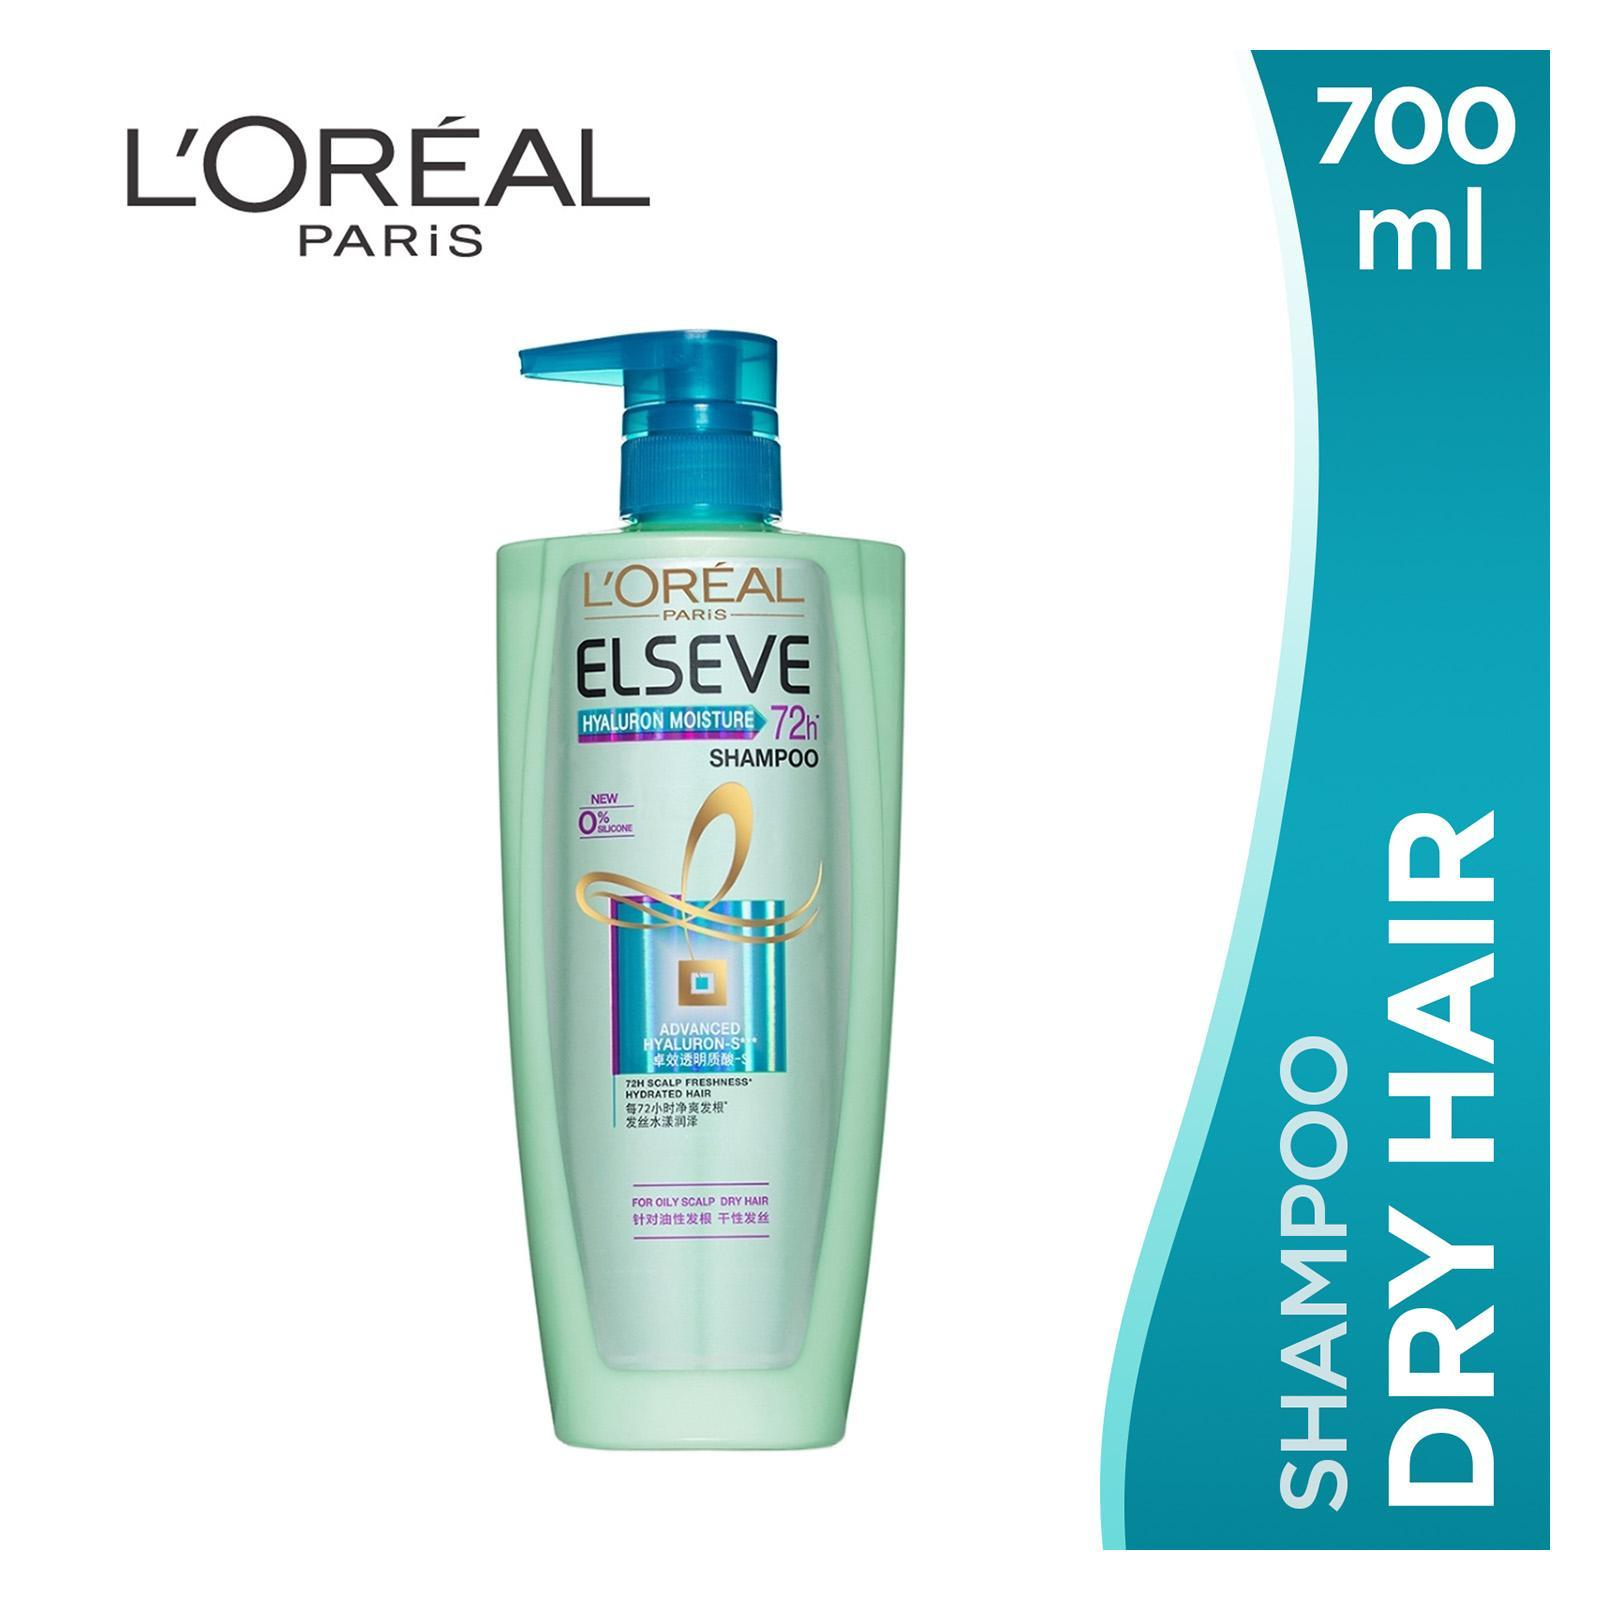 ELSEVE Hyaluron Moisture - Shampoo Oily Scalp 700ml